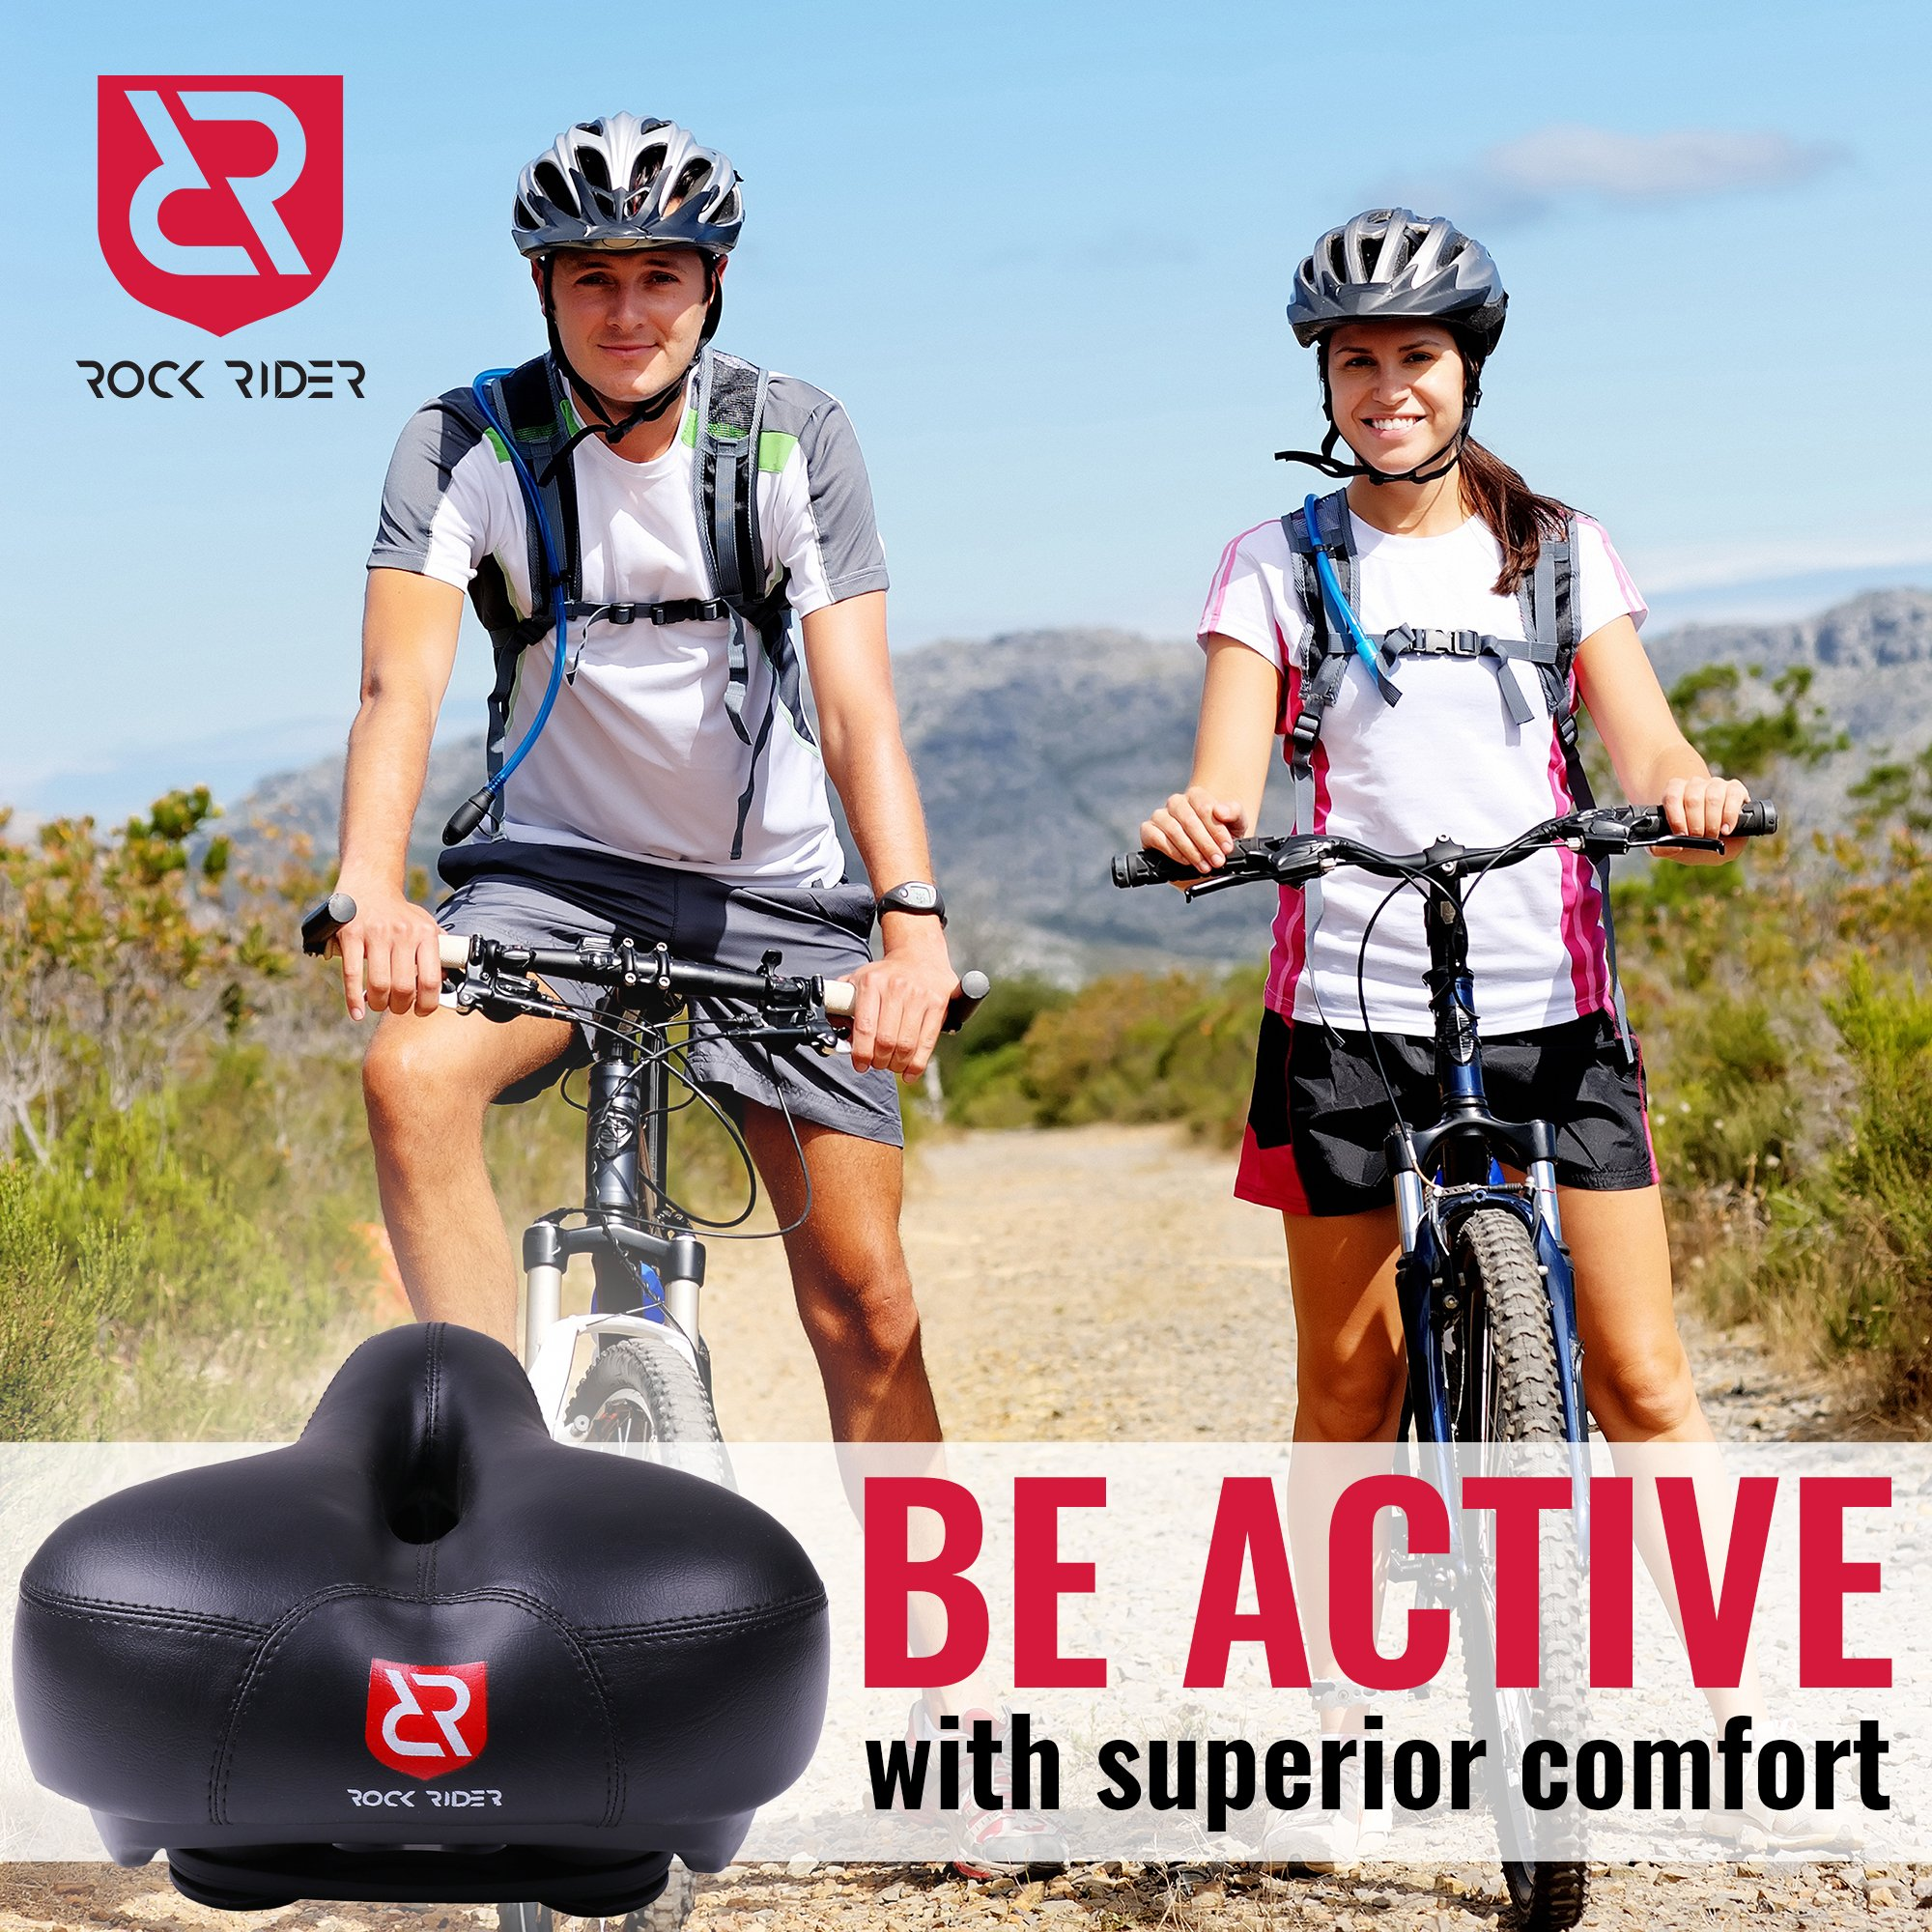 Rock Rider Extremely Comfortable Bicycle Seat Women Man Comfort Healthy Gel Bike Saddle Padded Wide Seat Cover (Black) by Rock Rider (Image #2)